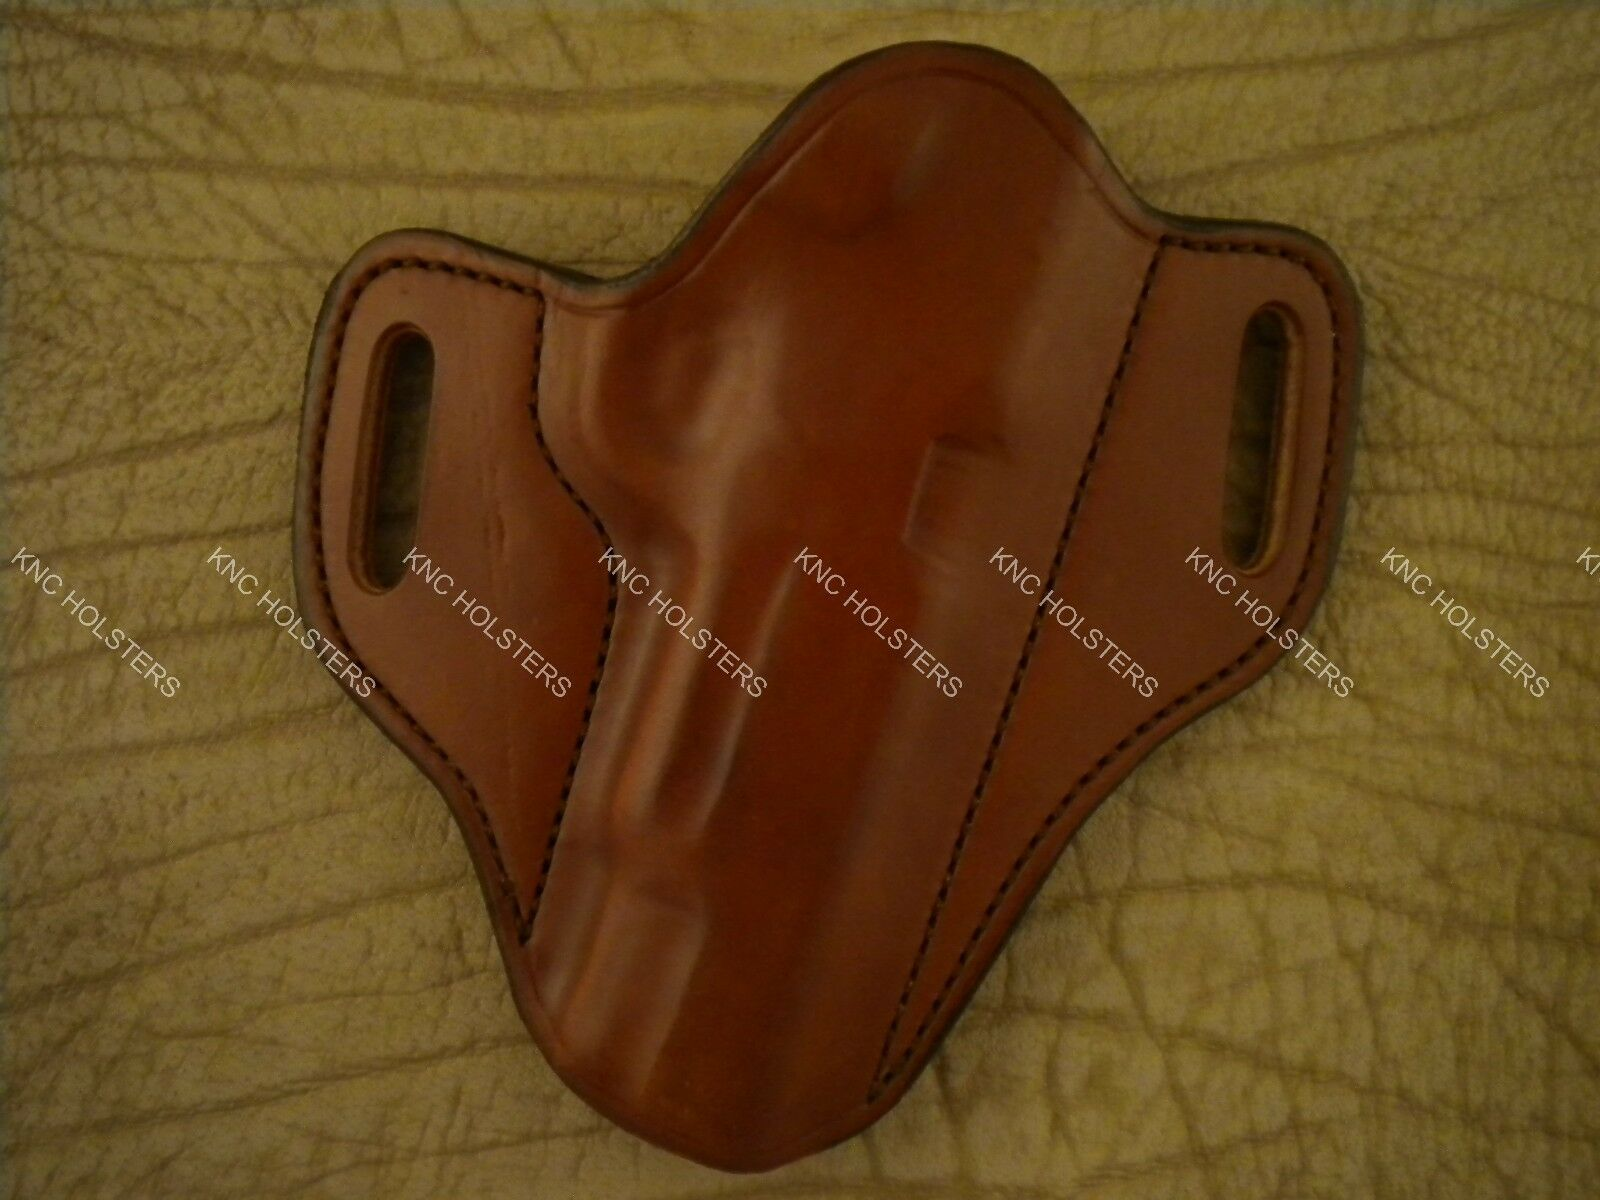 1911 5  Barrel  Leather Gun Holster  Right Hand Tan Made In U.S.A.